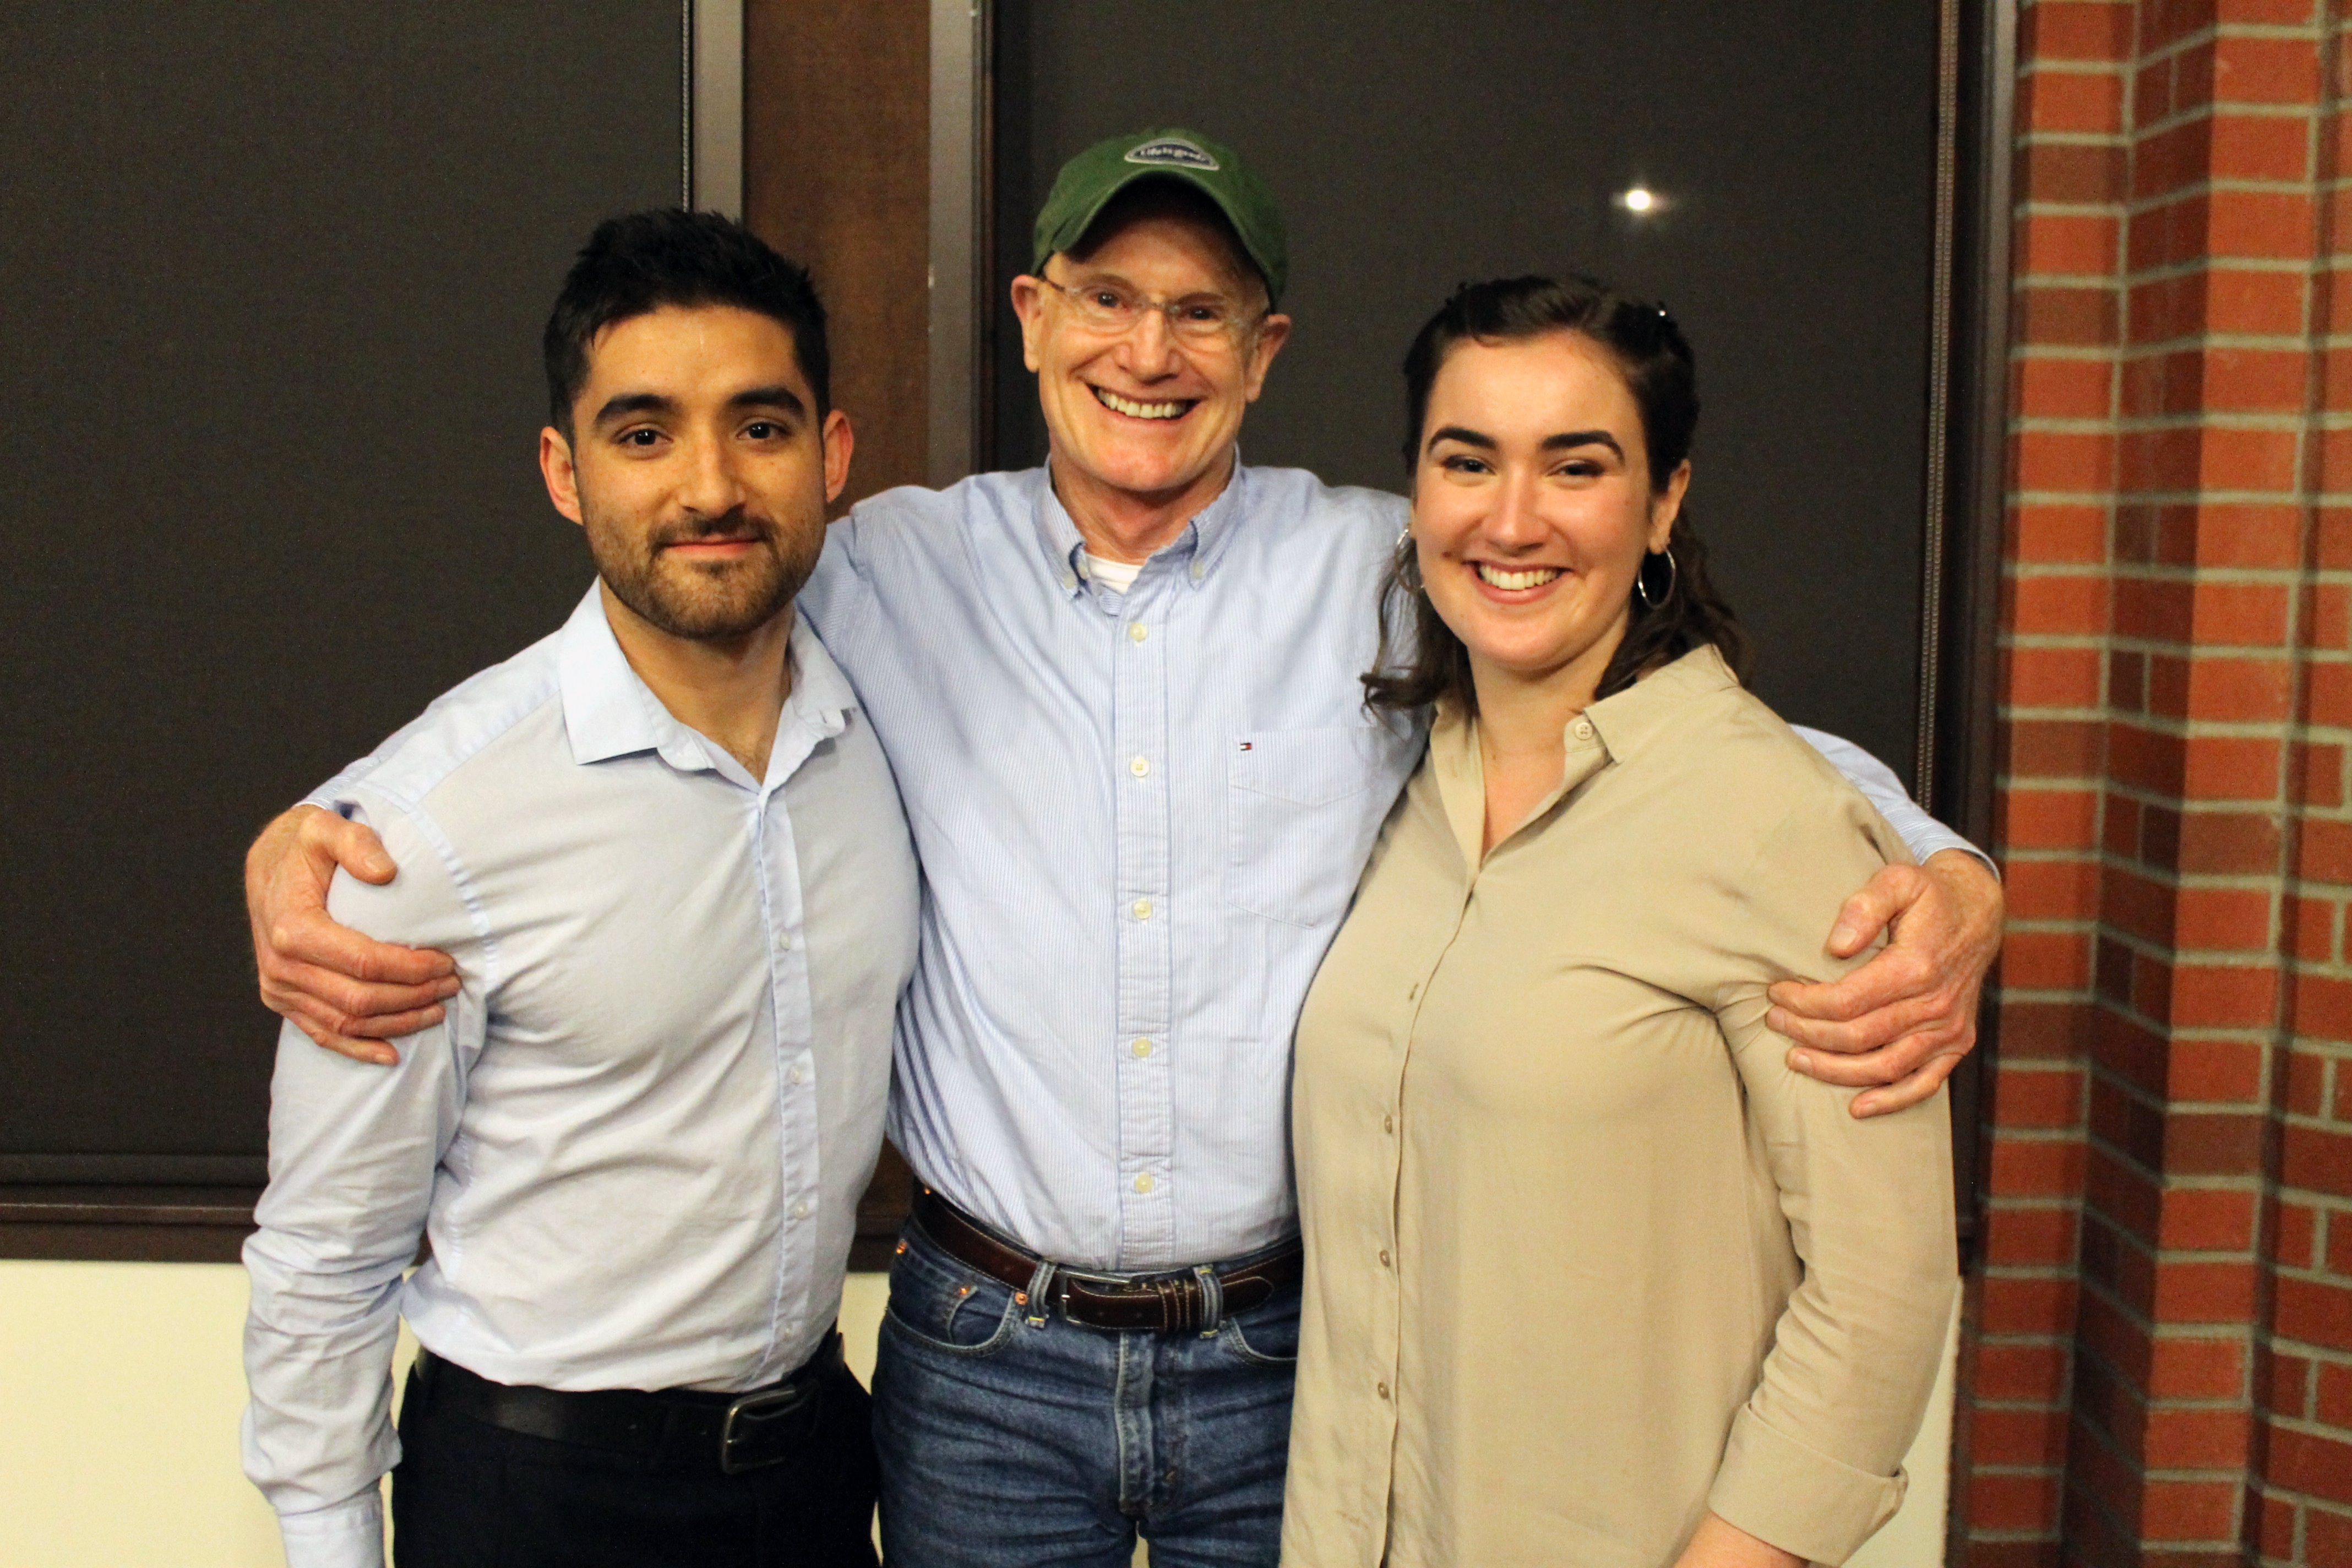 Kabir Jensen'15 and Kristen Kerbavas'15, this year's two seniors who have been in the Humanities Program since their freshman year, with Prof Erving. So sweet!